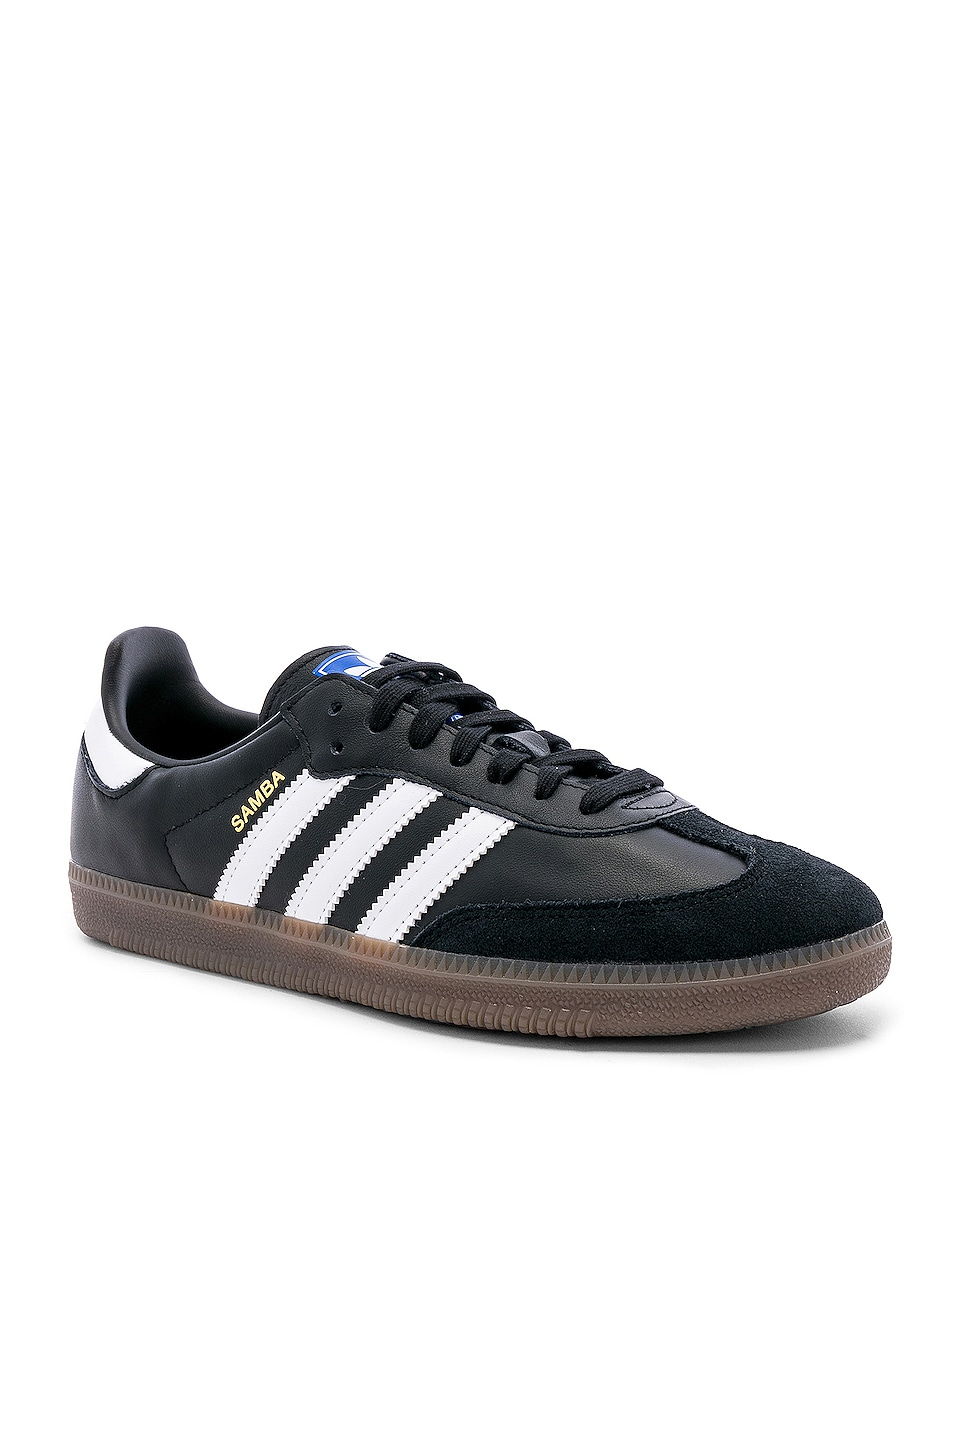 adidas Originals Samba OG in Black & White & Gum